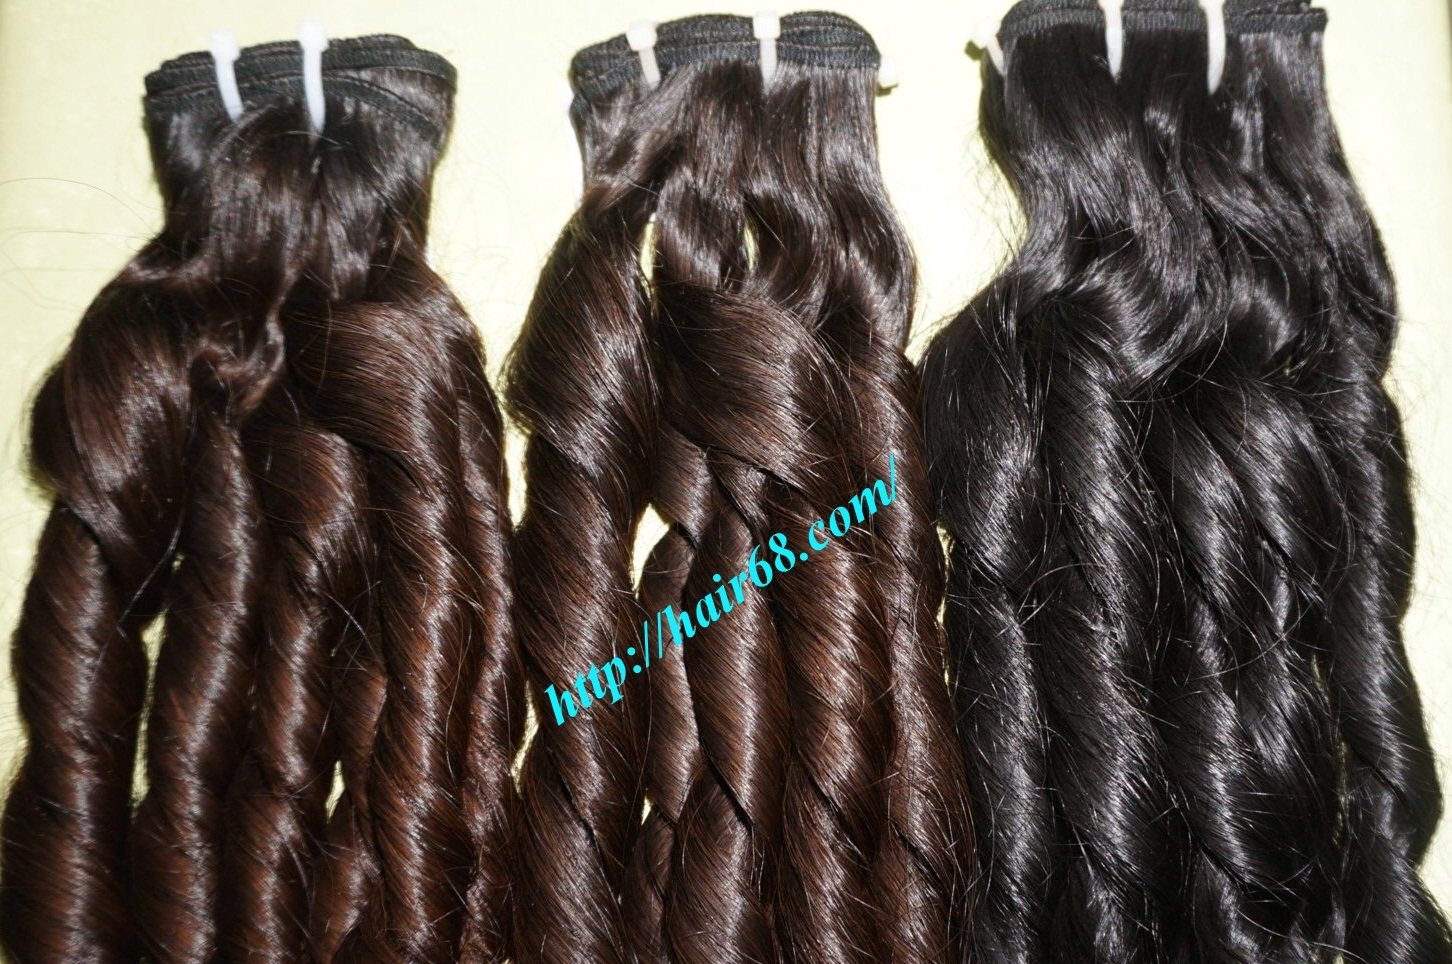 20 inch - Weave Loose Curly Hair Extensions - Double Drawn 4